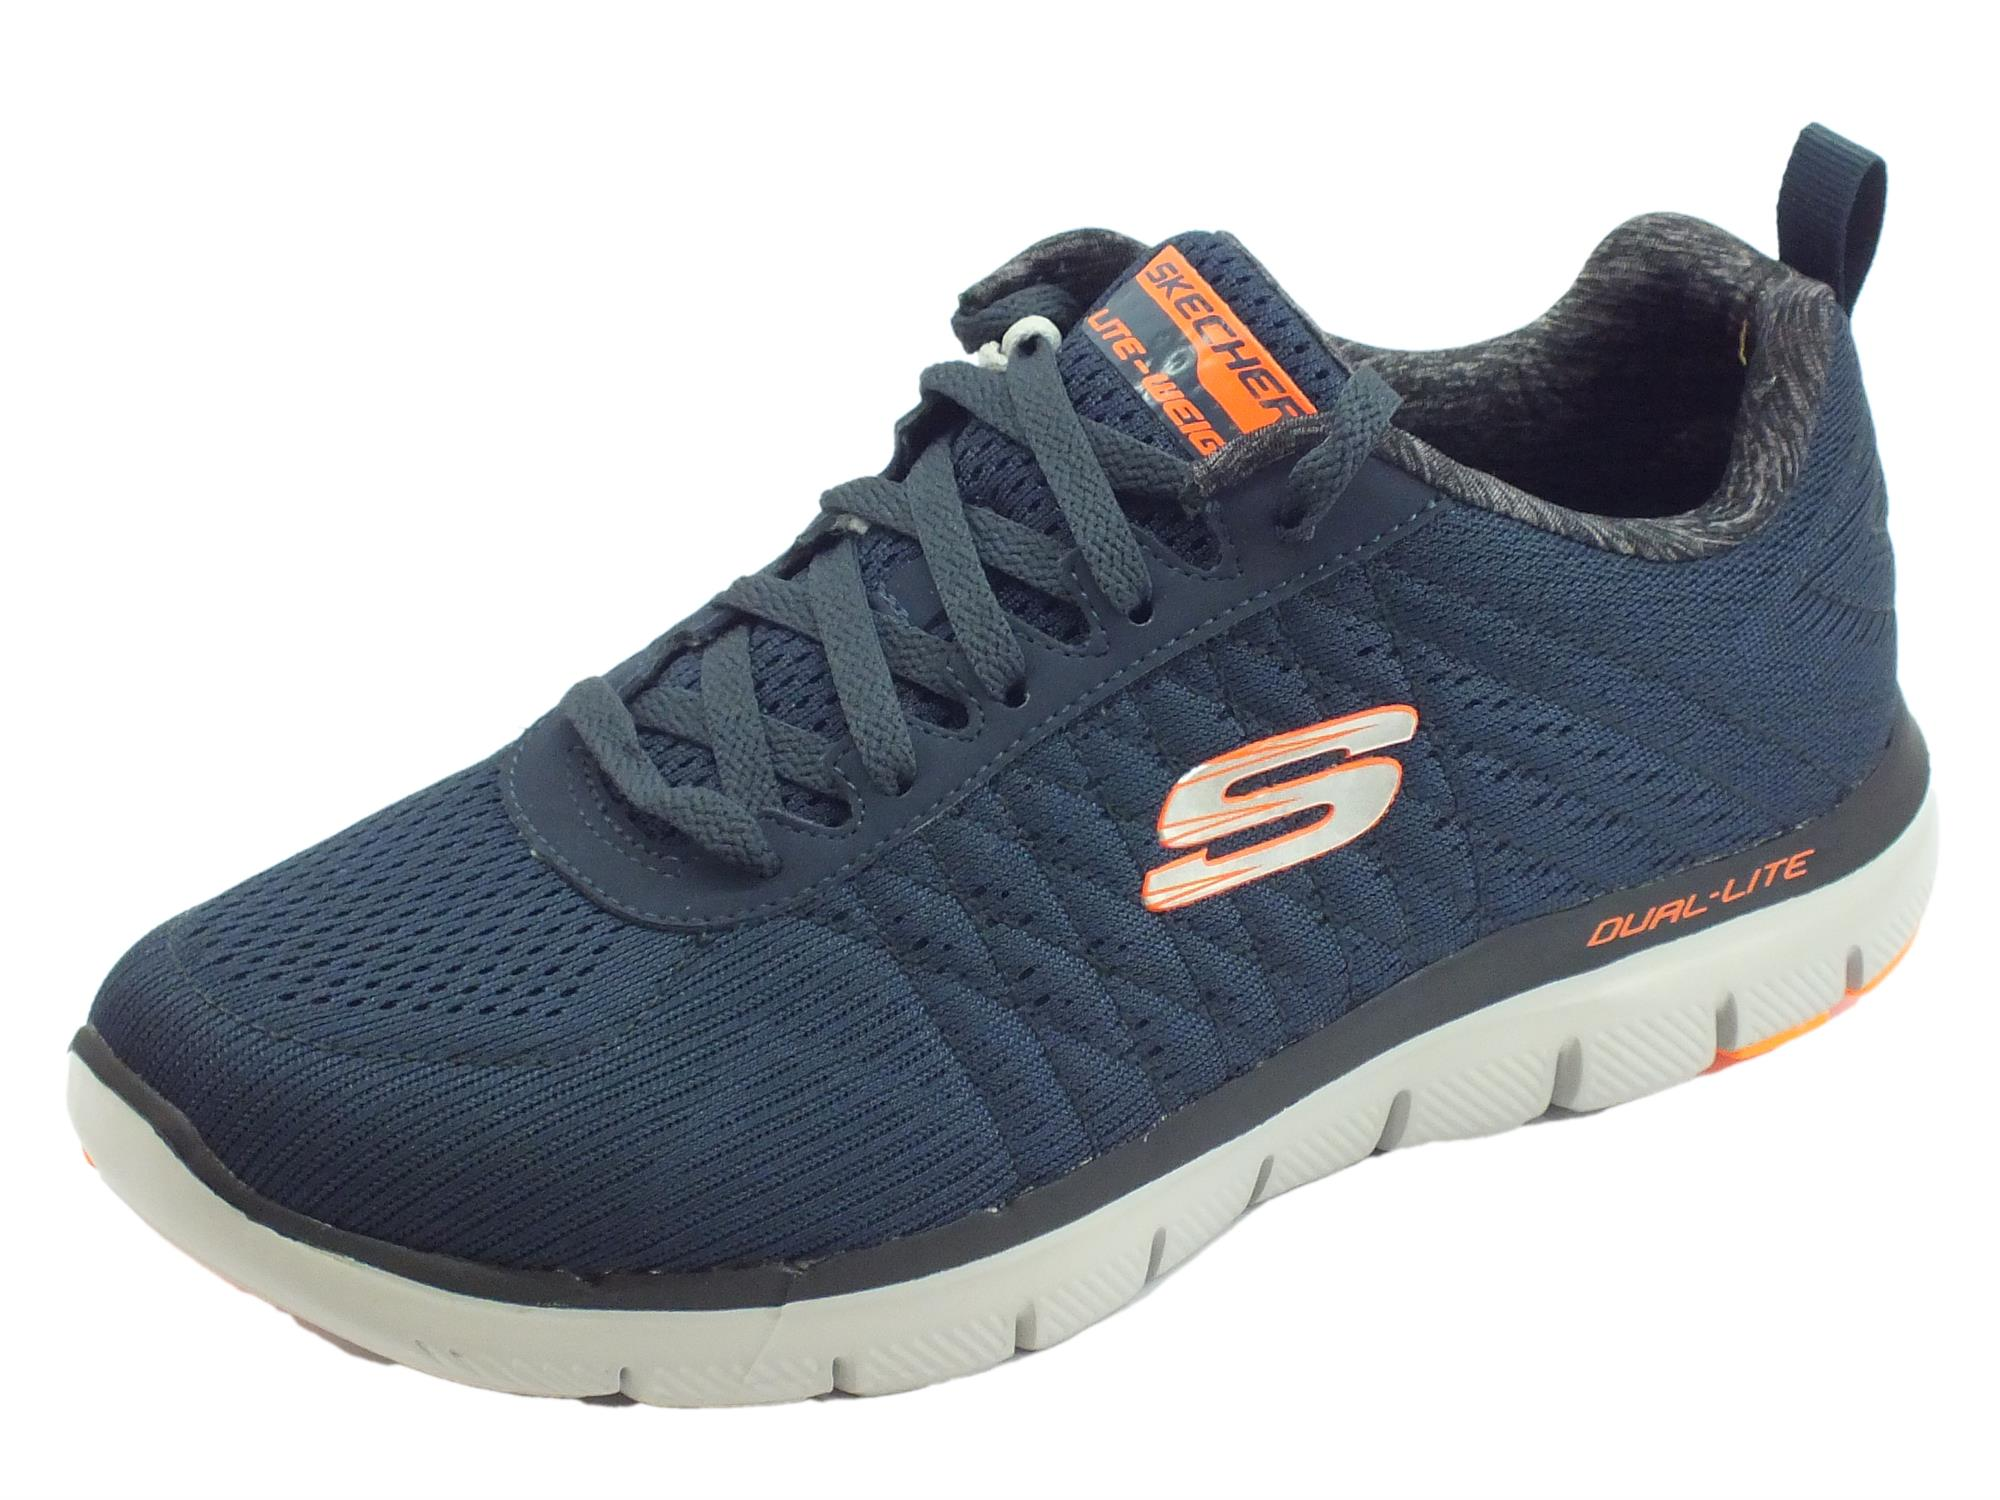 Skechers Flex Advantage 2.0 the happs scarpe sportive uomo tessuto blu